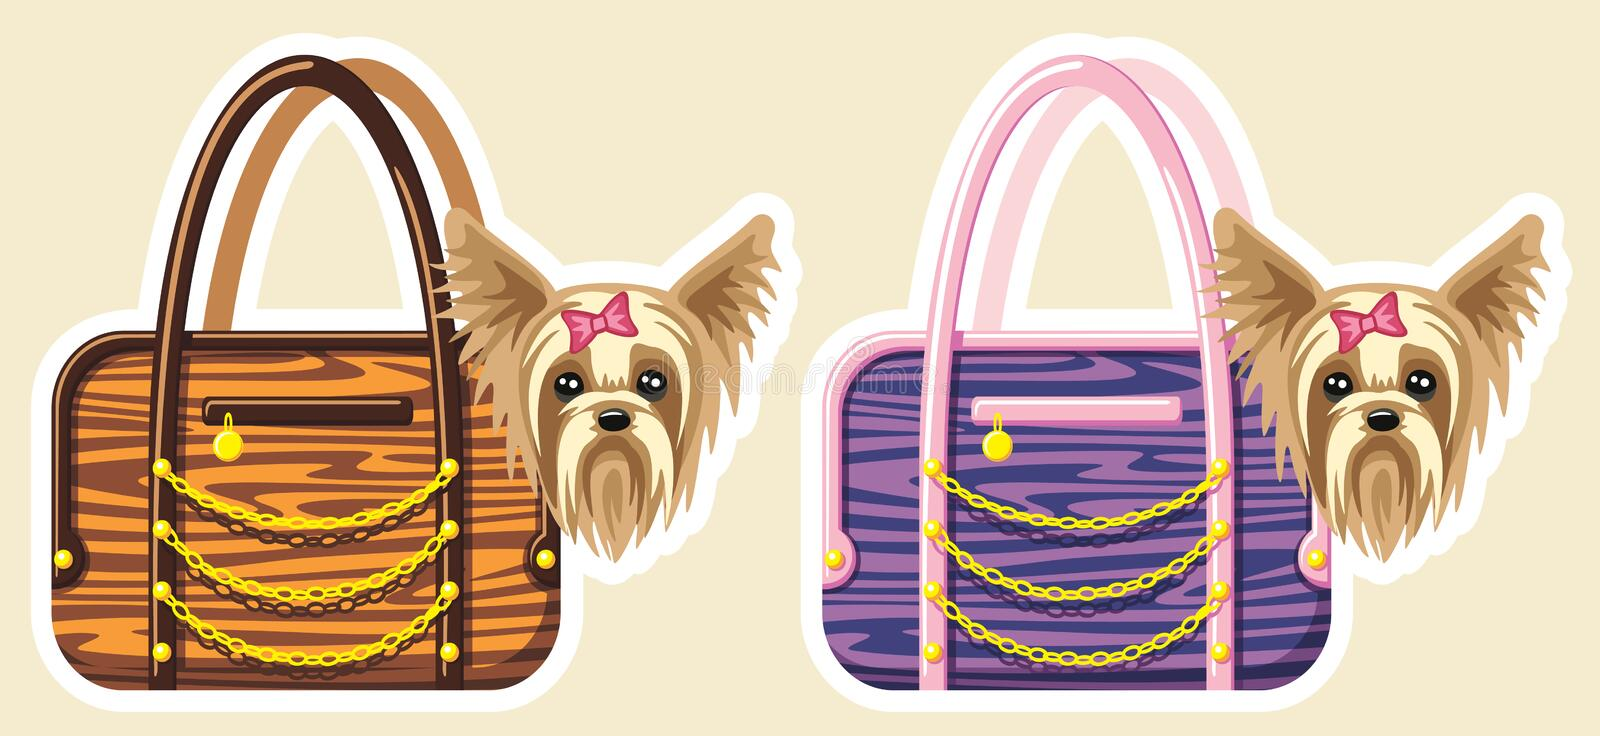 Dogs in bags royalty free illustration